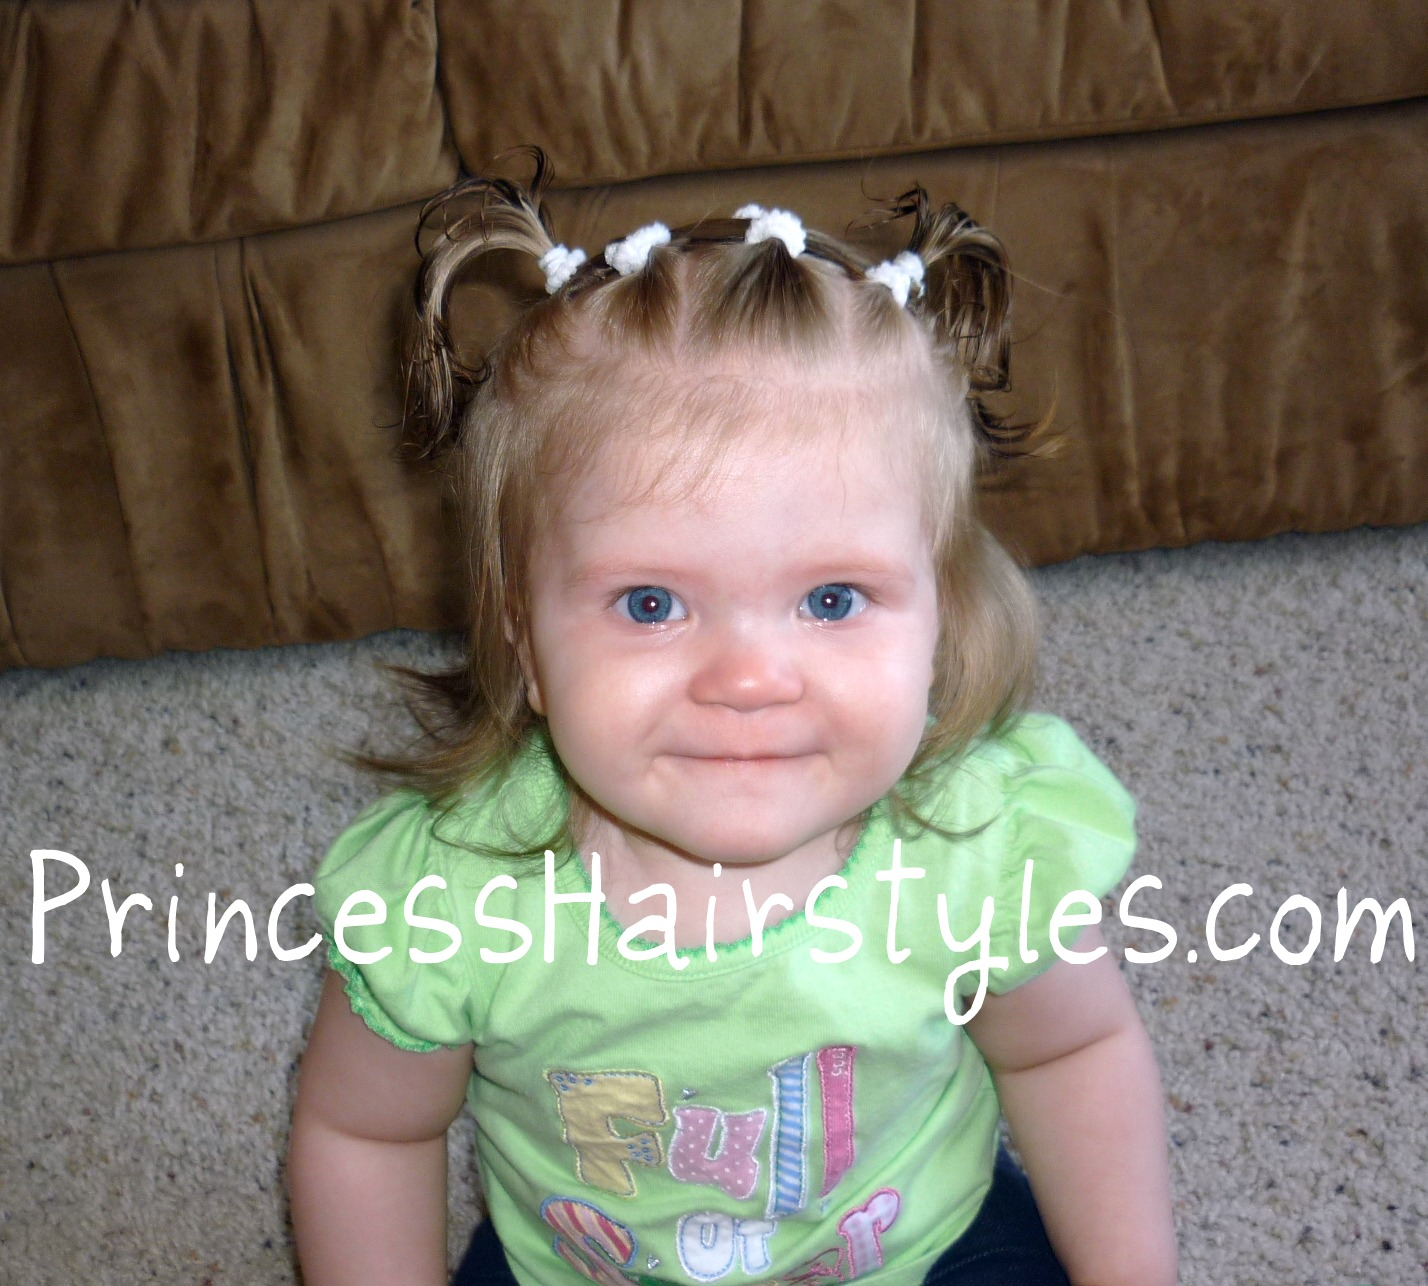 Hairstyles For Short Hair Baby Girl : Hairstyles For Girls - Princess Hairstyles: Baby Hairstyles - Criss ...